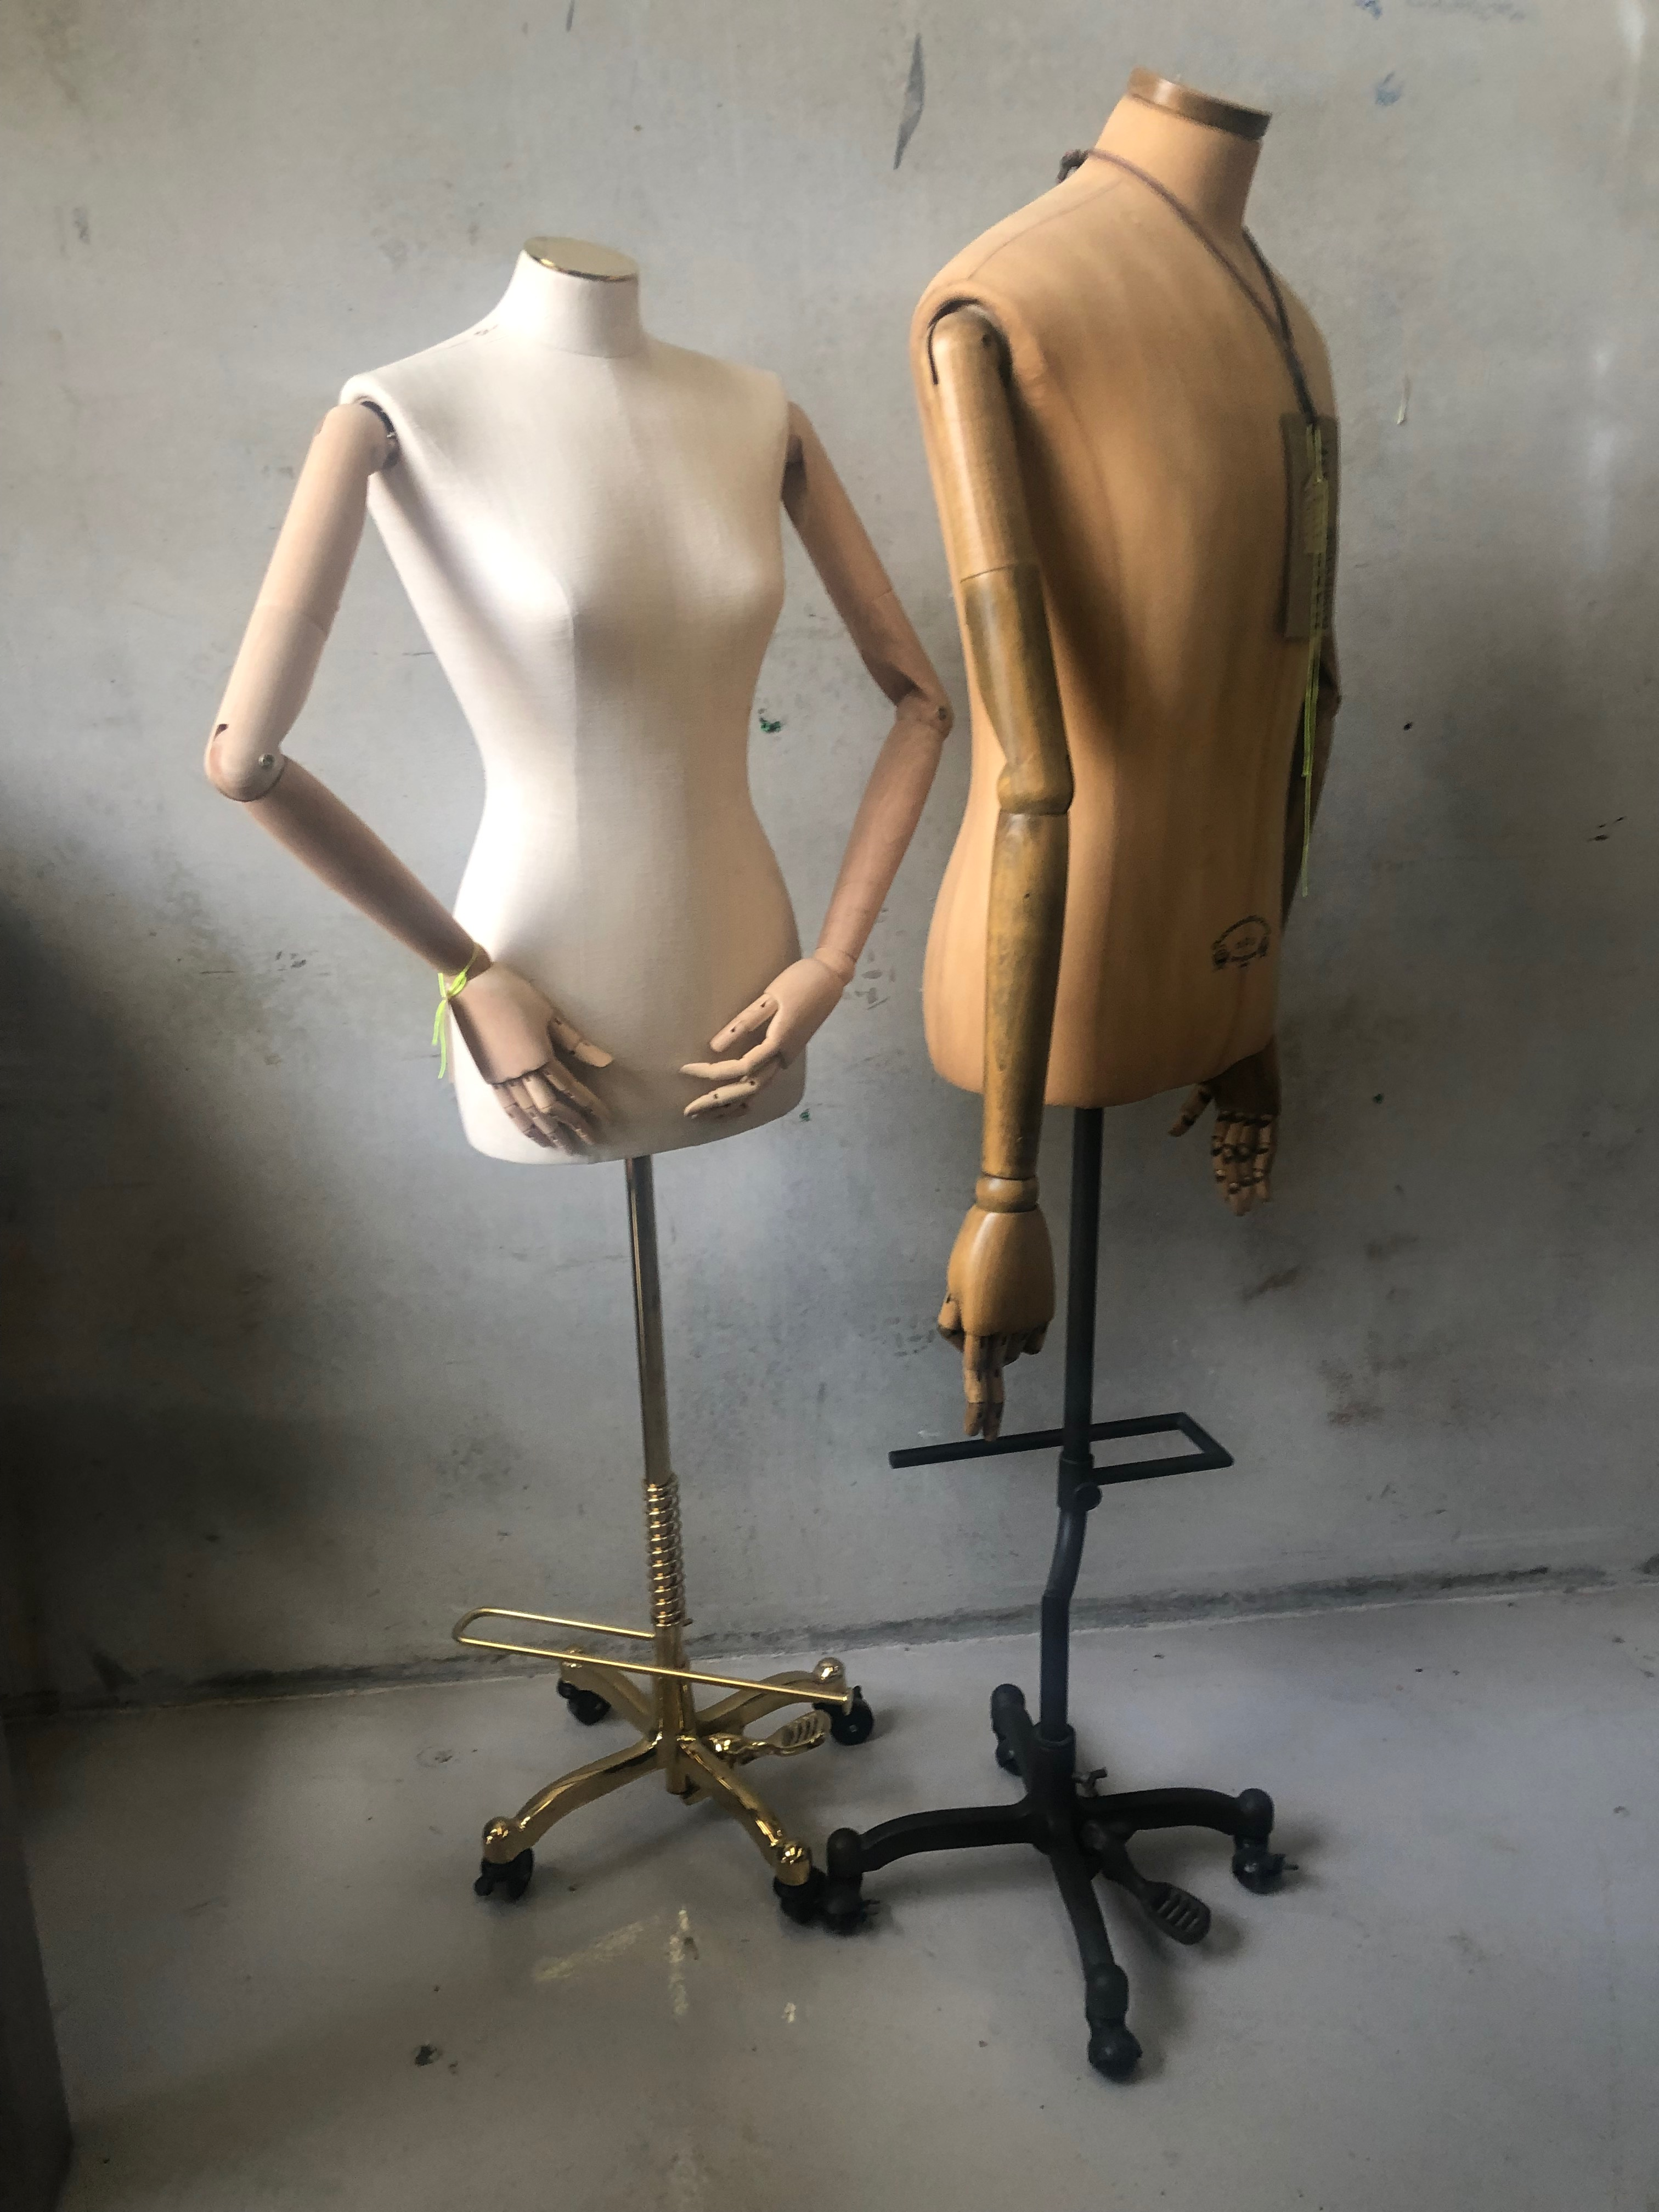 Handcrafted euro manequins